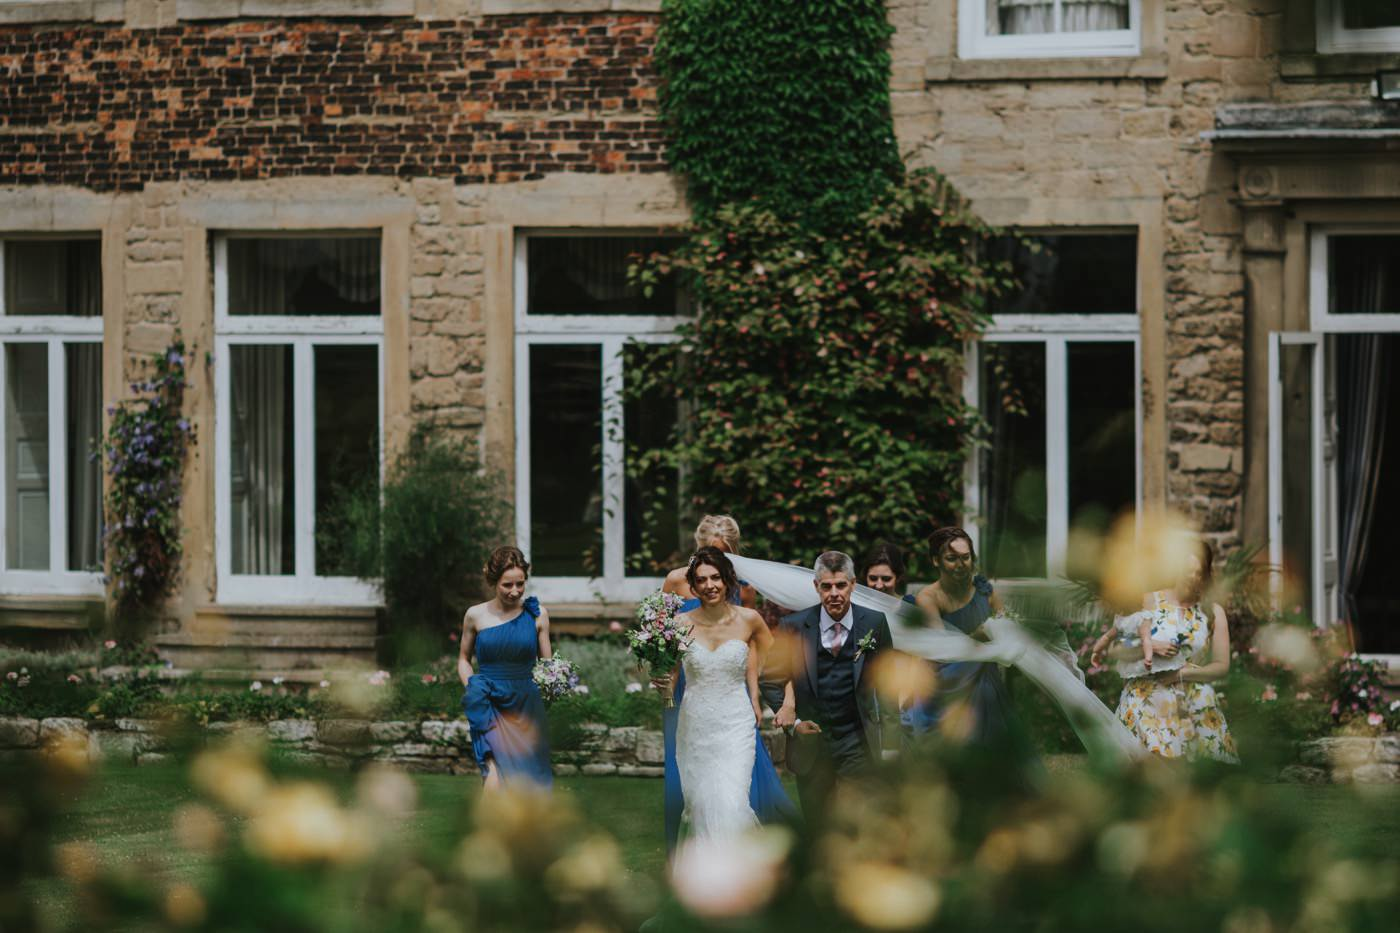 Matt & Emma | Hooton Pagnell Hall & Stable Arches 47